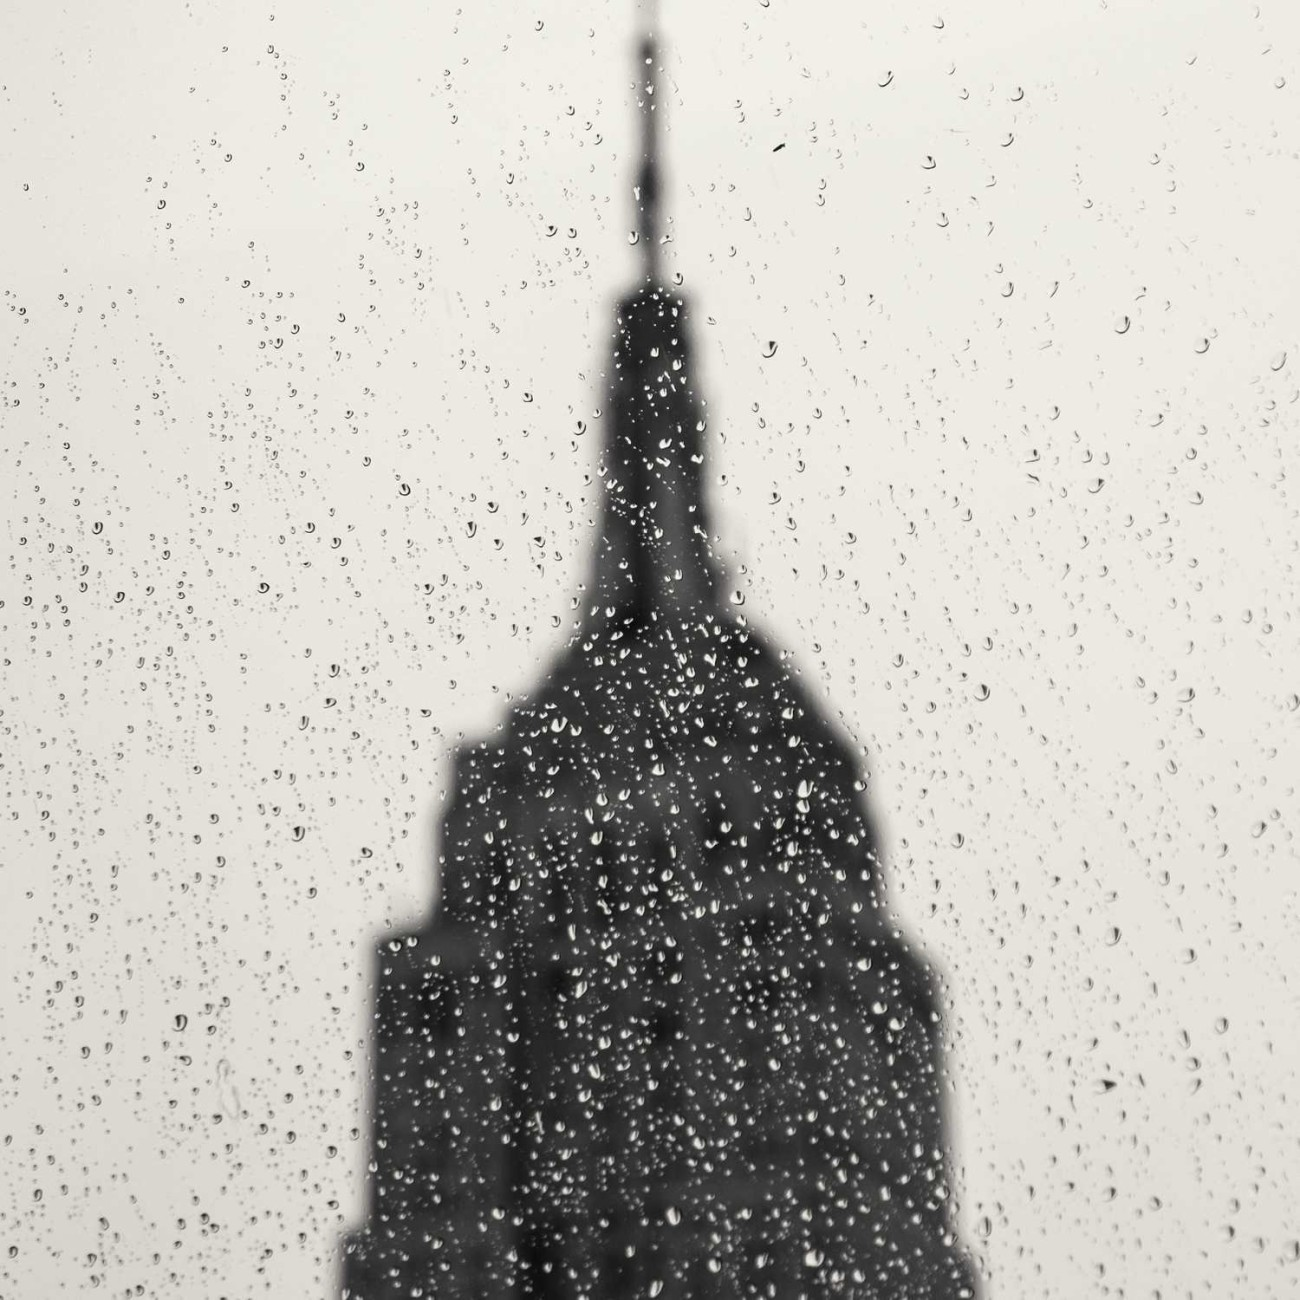 Rain in the city, New York, 2014